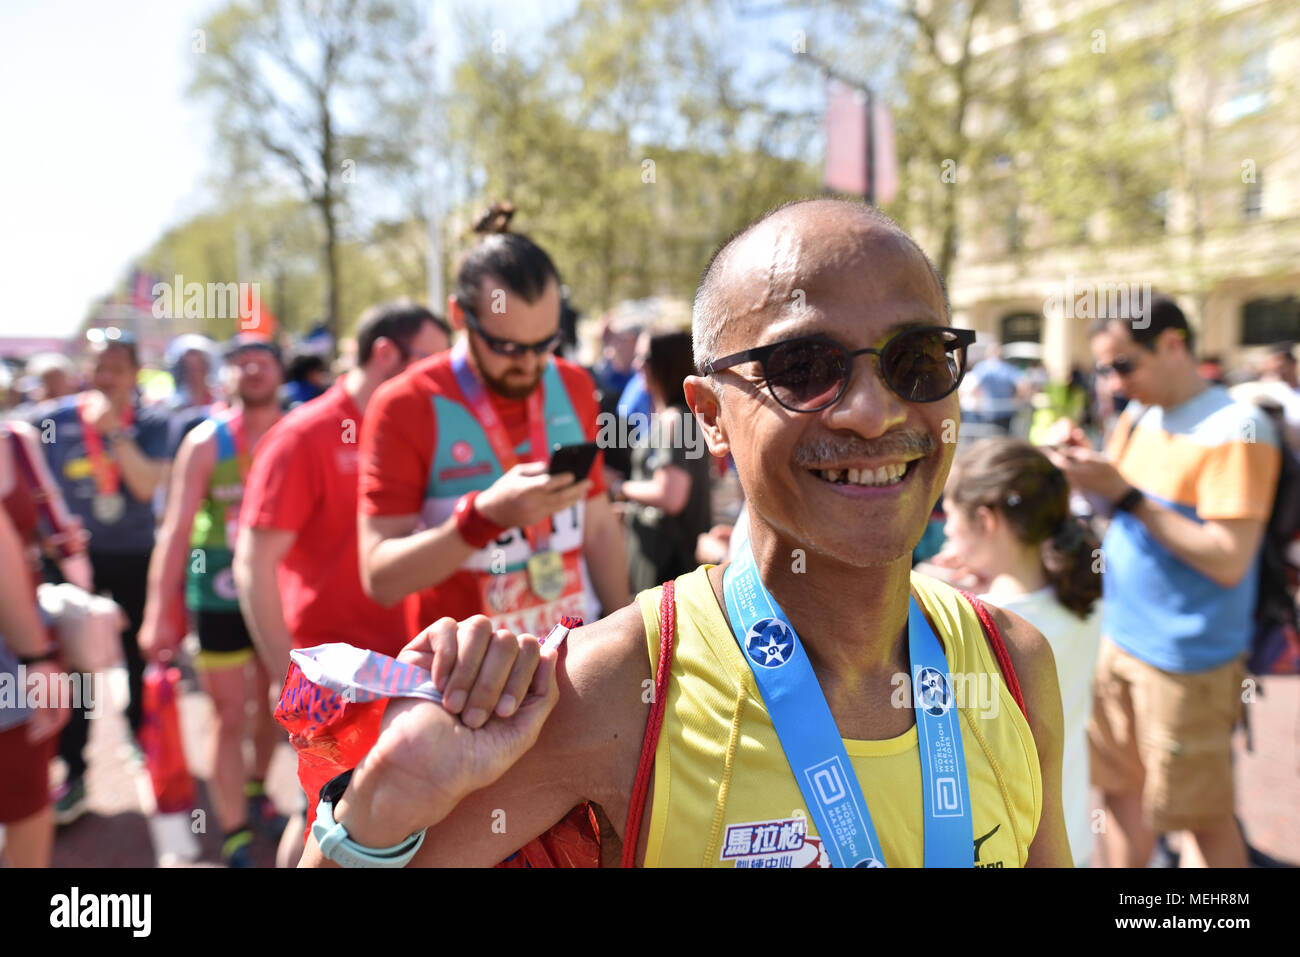 The Mall, London UK. 22nd April 2018.  Thousands of people run in the annual Virgin Money London Marathon. Credit: Matthew Chattle/Alamy Live News Stock Photo